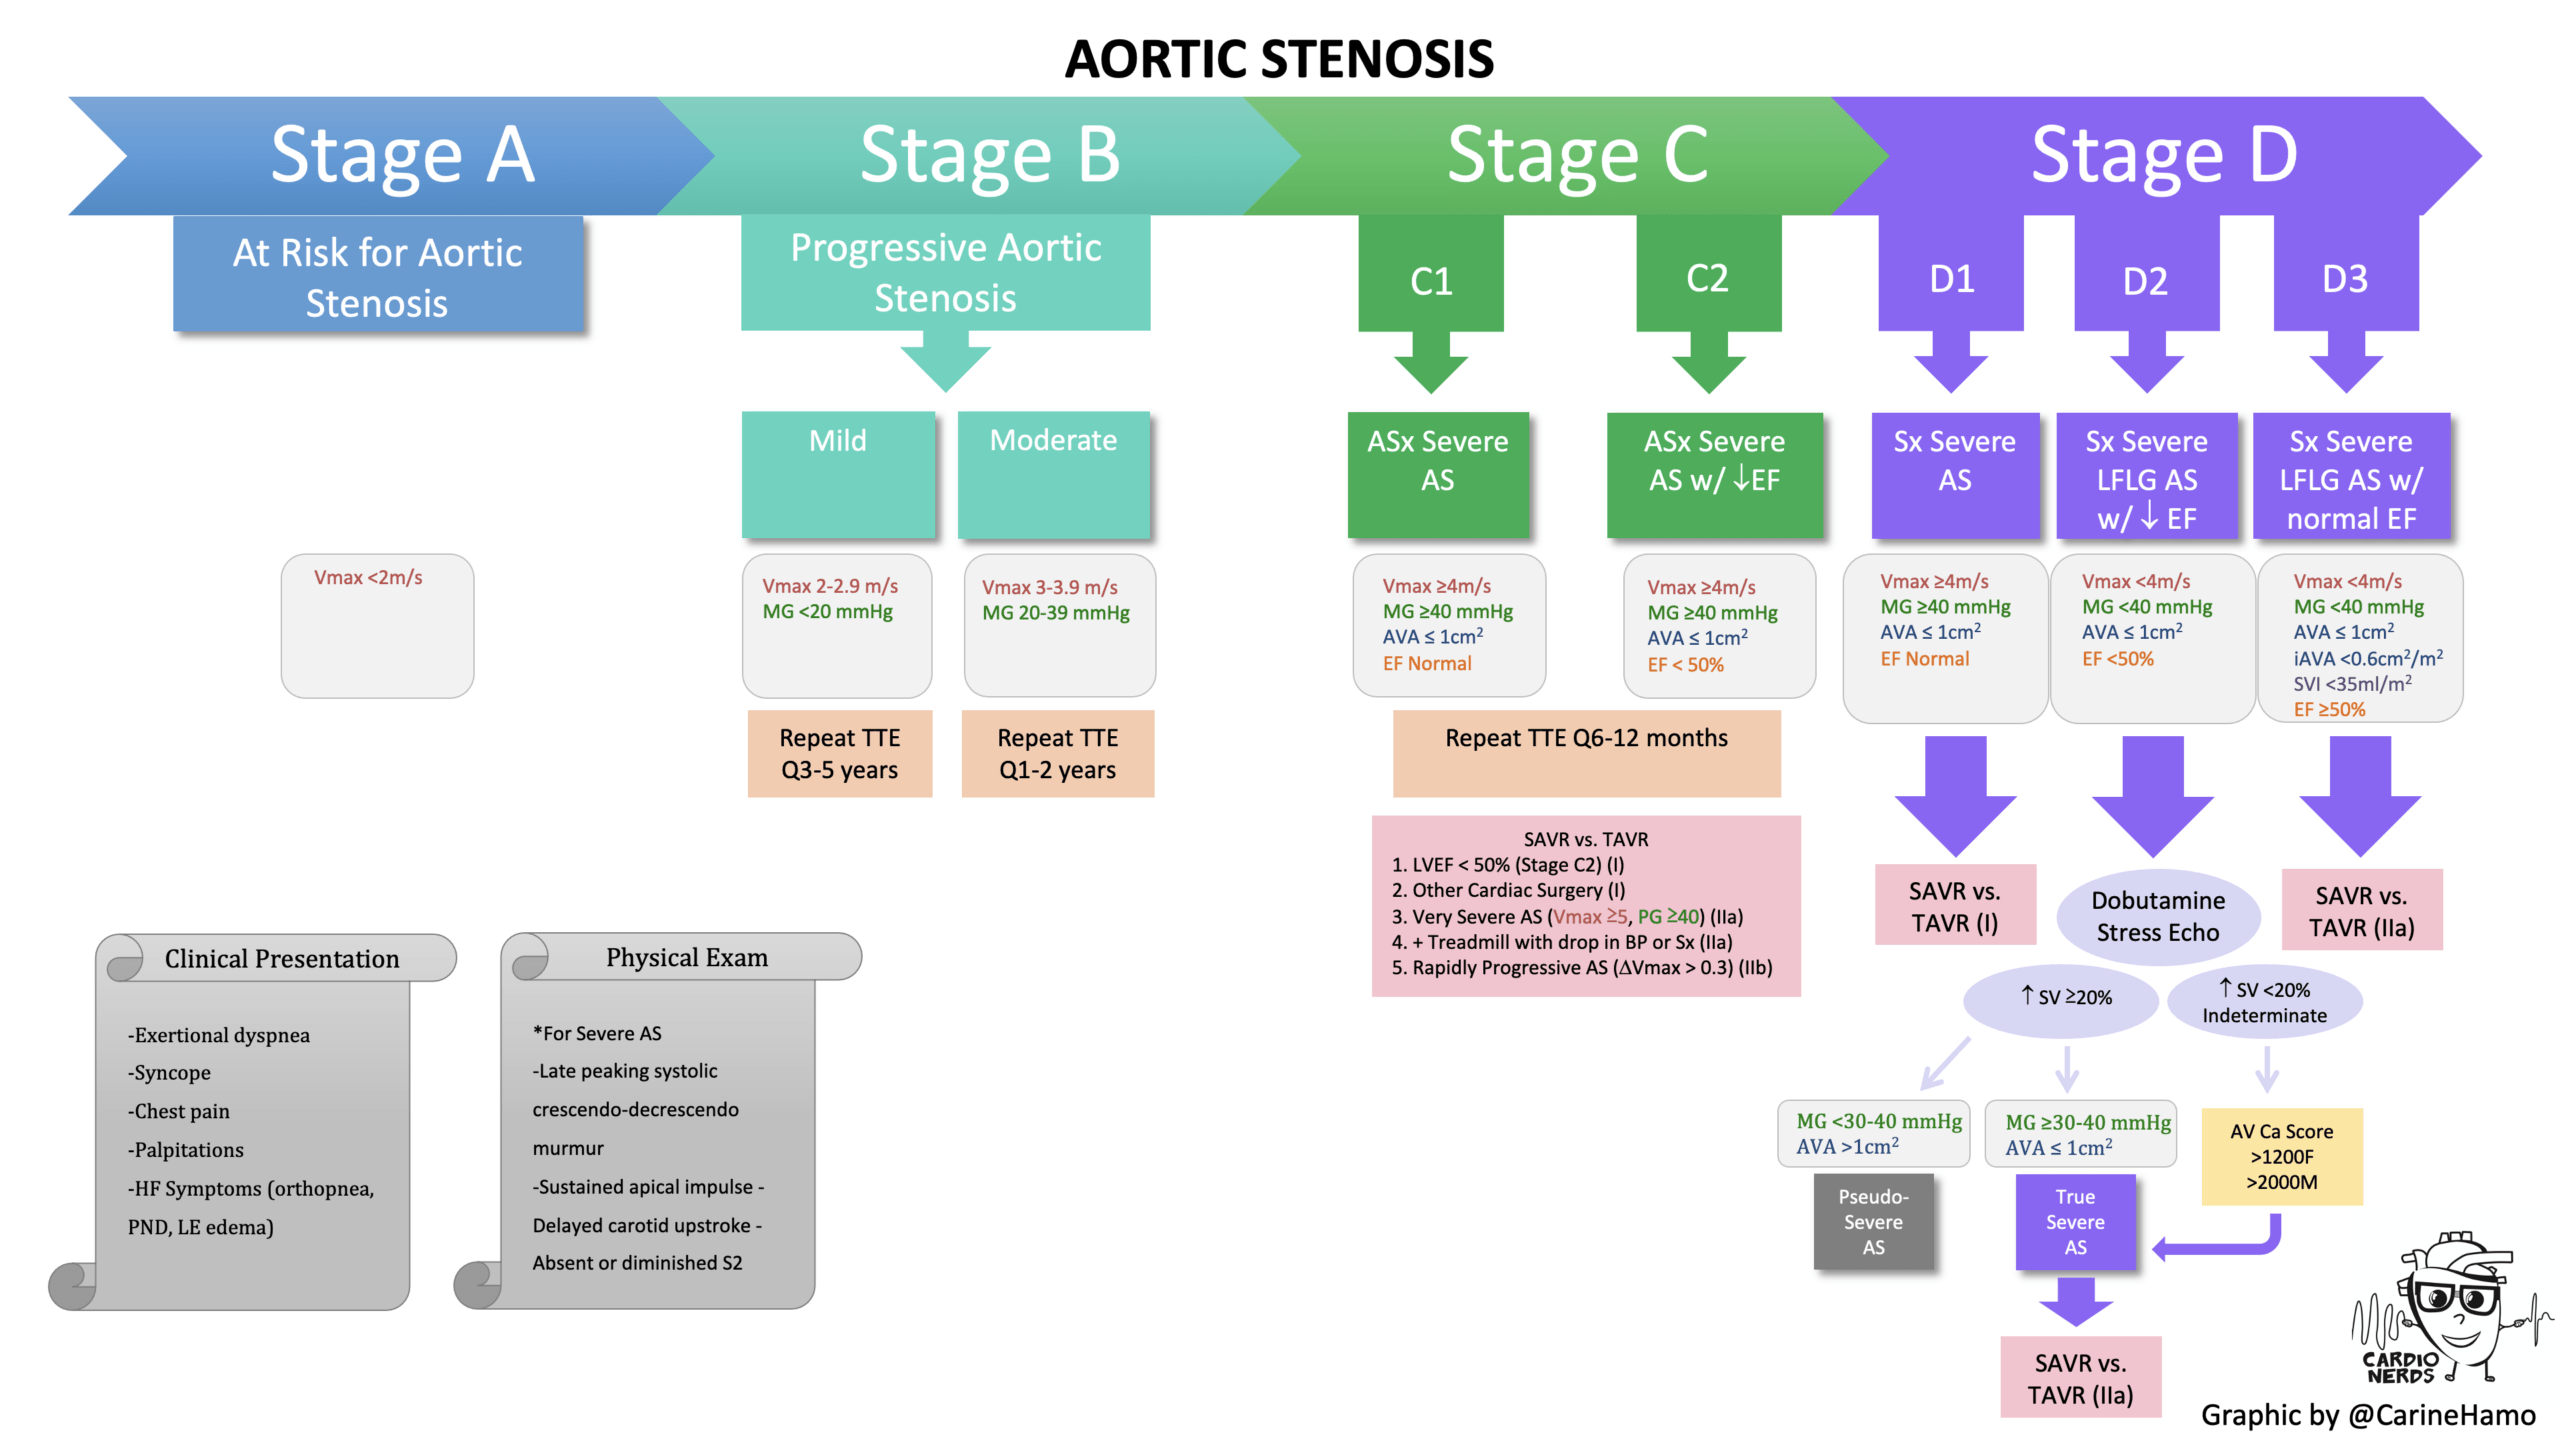 2. Imaging and TAVR for Aortic Stenosis with Drs. Sneha Vakamudi and Rani Hasan